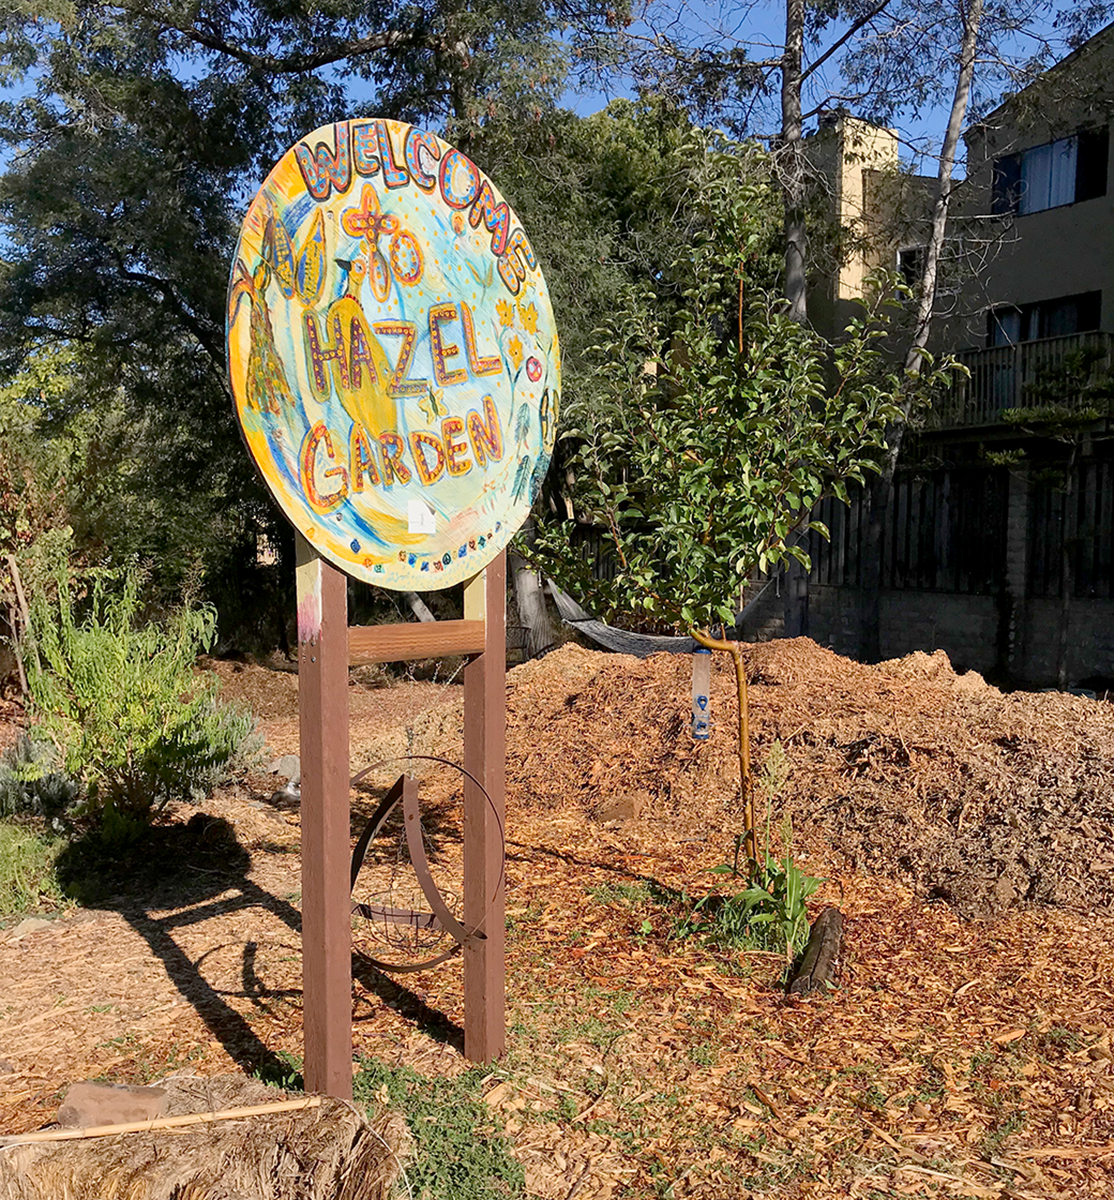 ABOVE: A handmade signs designates the area and welcomes patrons to the Hazel Garden. BELOW: Benjamin Collier watering the plants at his community garden.